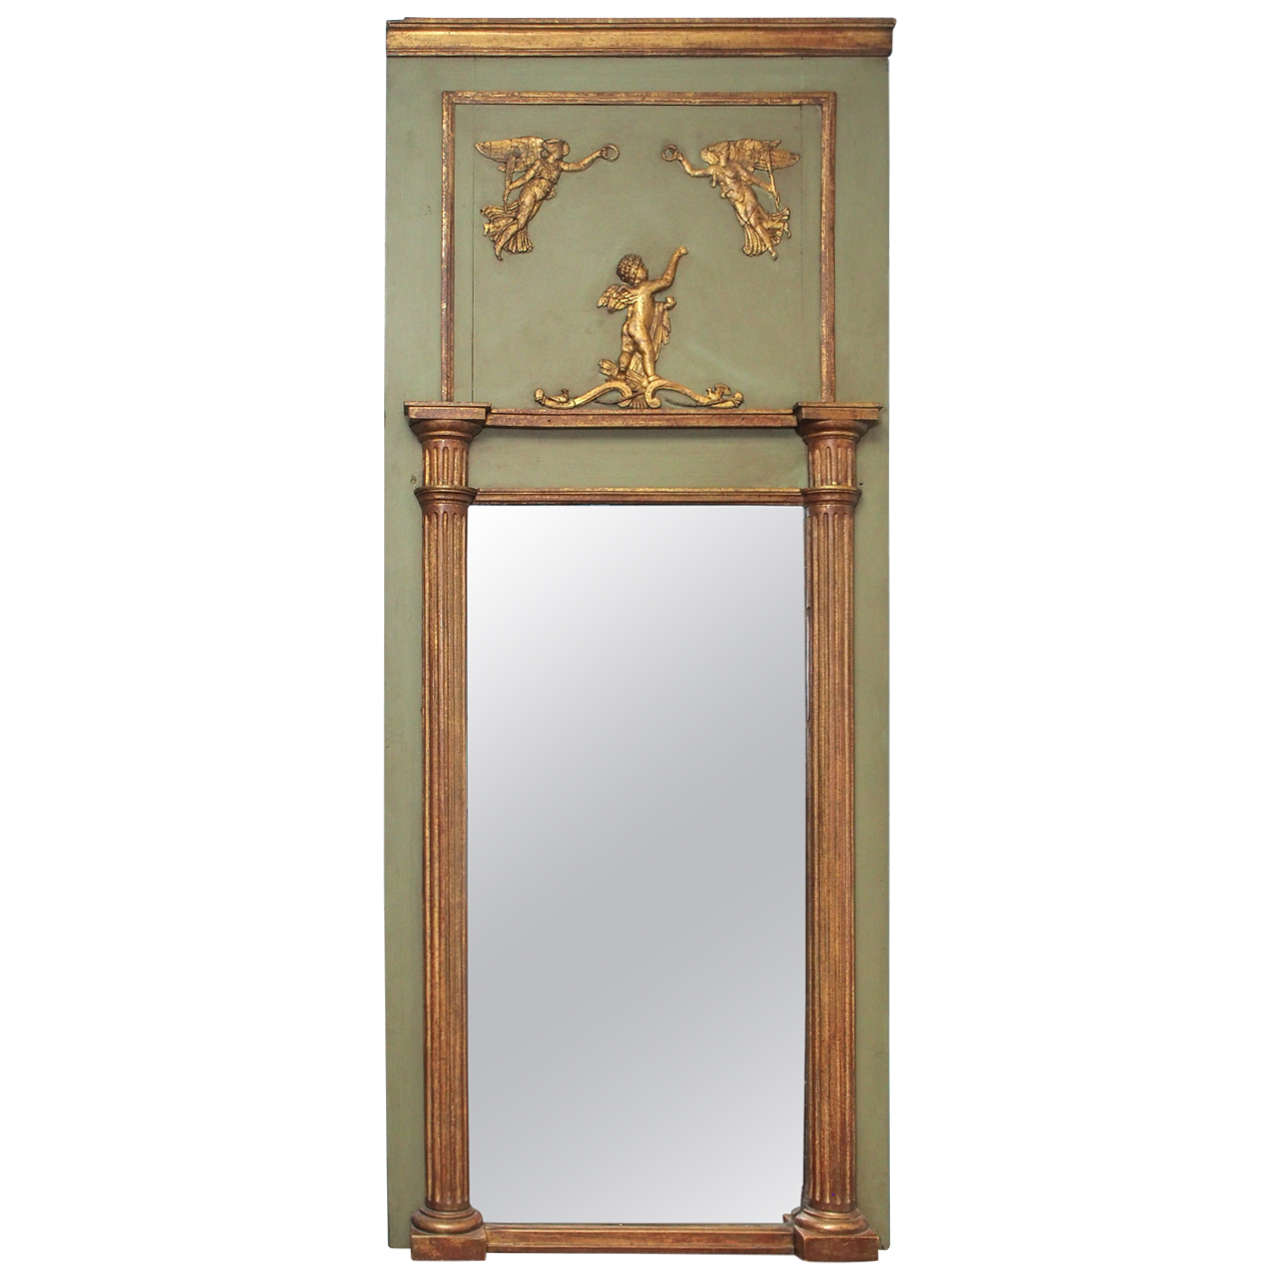 French Empire Period Painted and Gilded Mirror